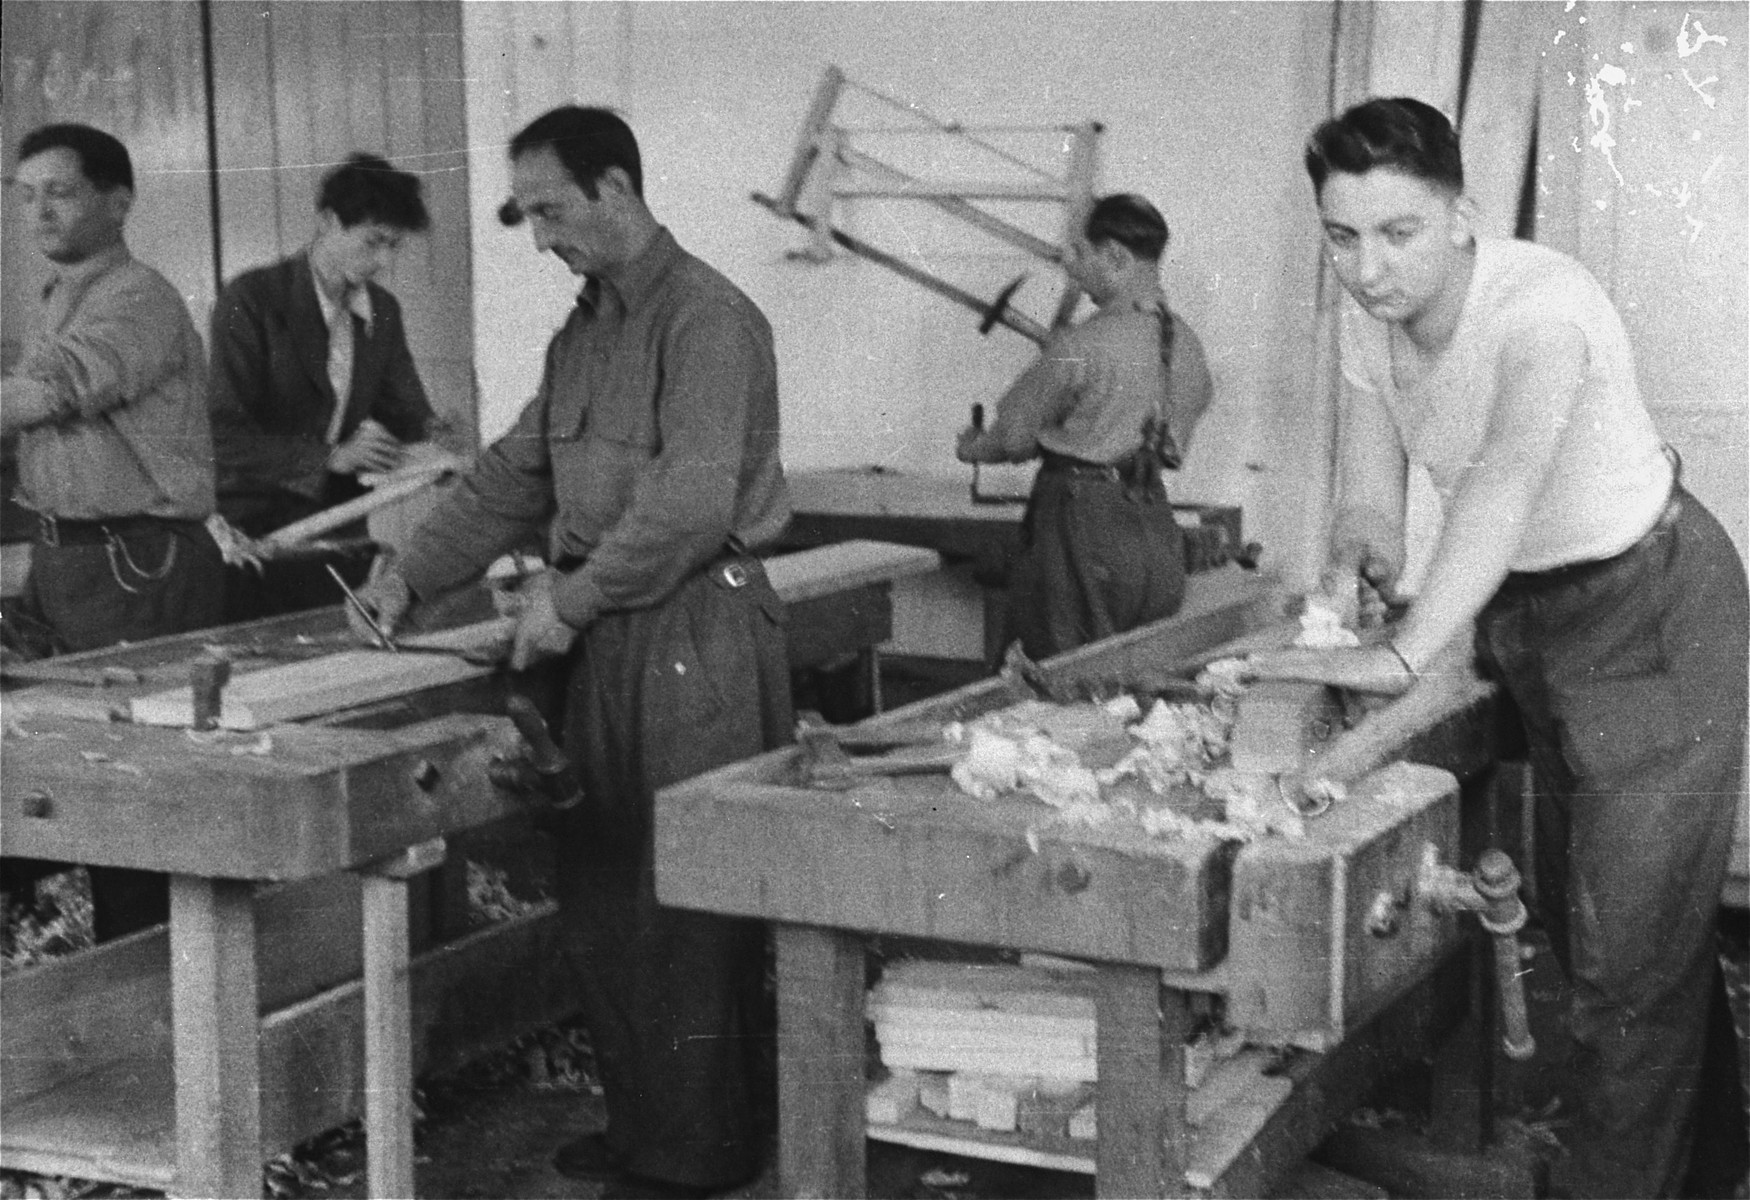 Jewish men measure and plane wood in the carpentry workshop of an ORT (Organization for Rehabilitation through Training) training program in the Landsberg displaced persons' camp: [Oversized print]